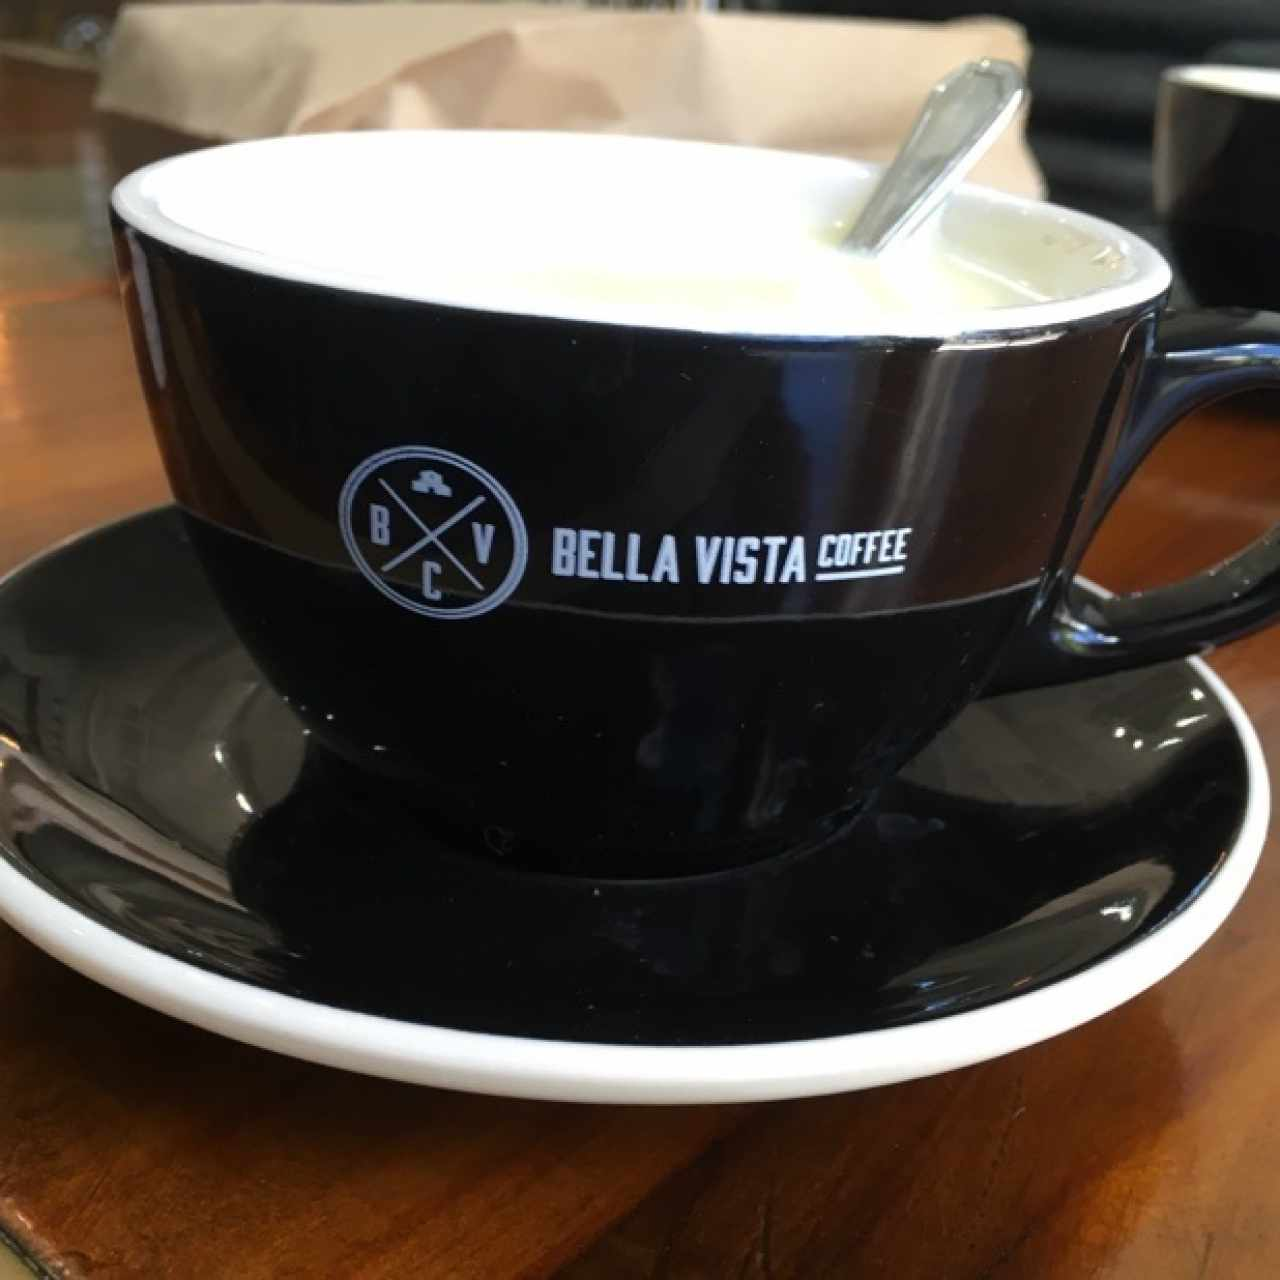 Bella Vista Coffee